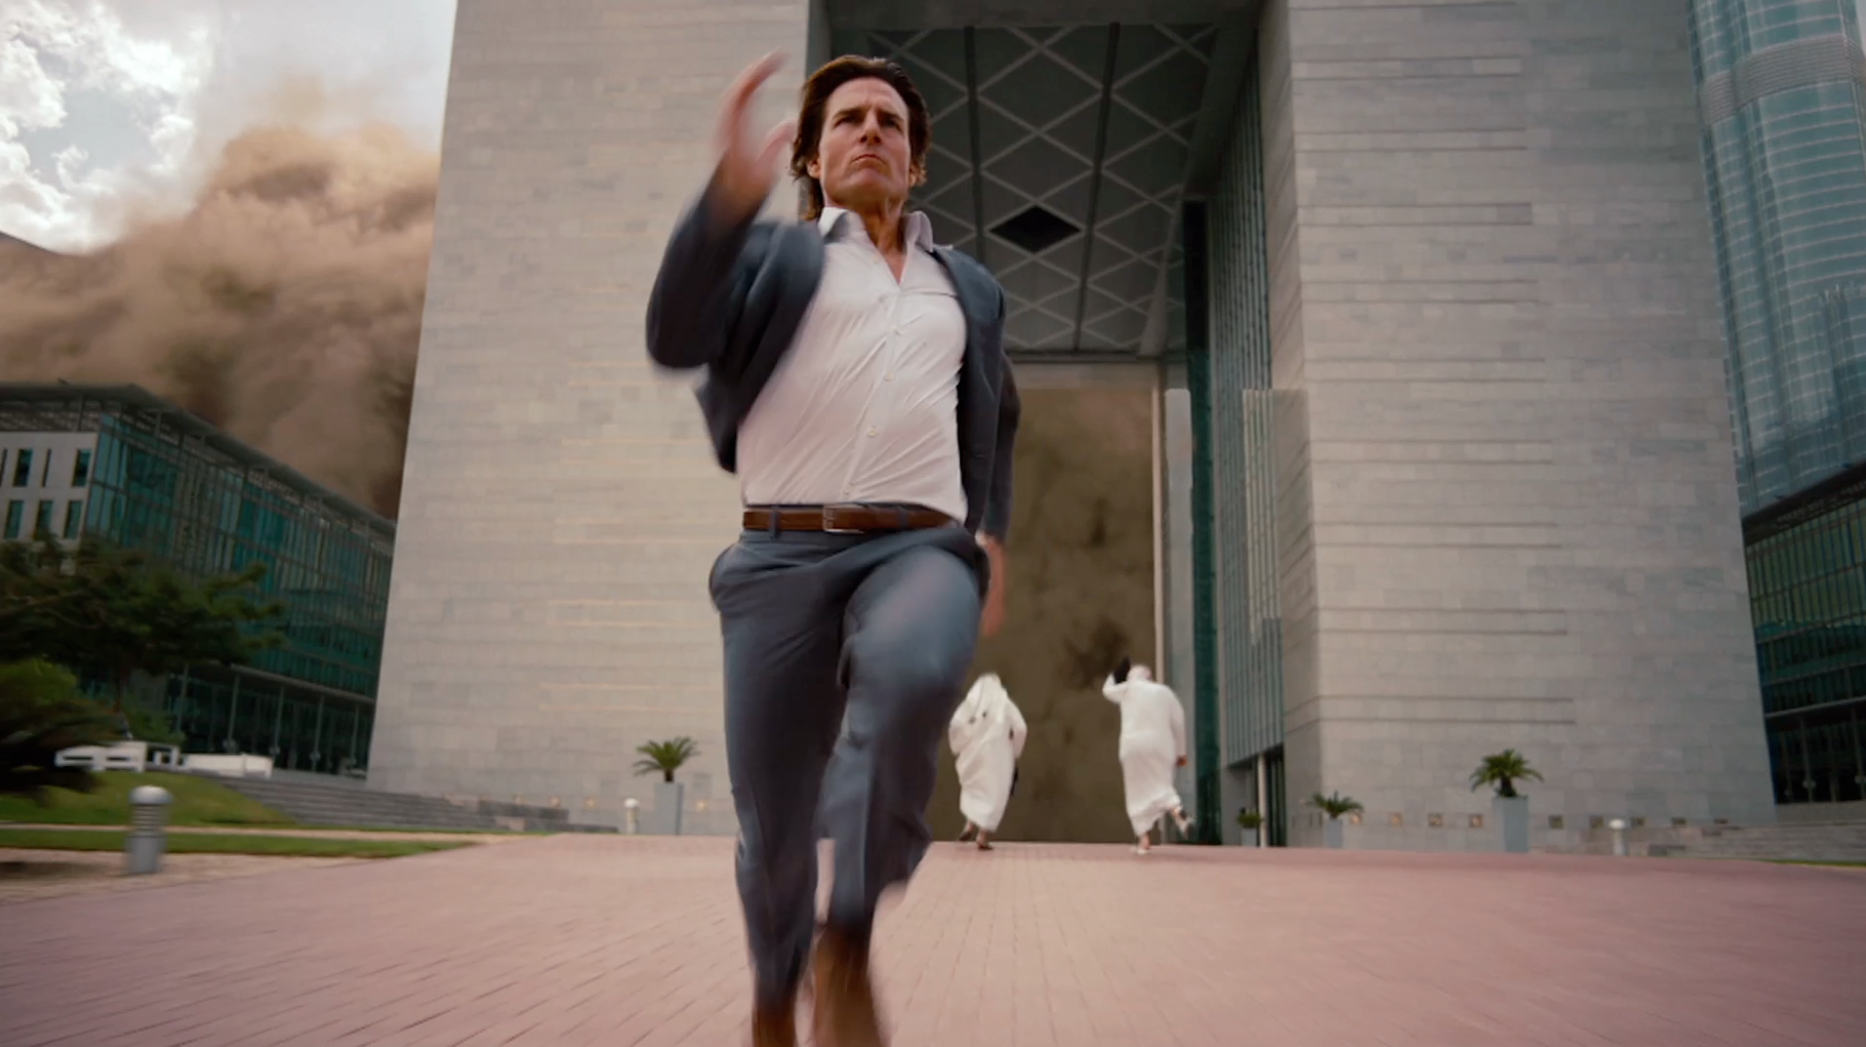 FXX - MISSION IMPOSSIBLE: GHOST PROTOCOL (TV15)